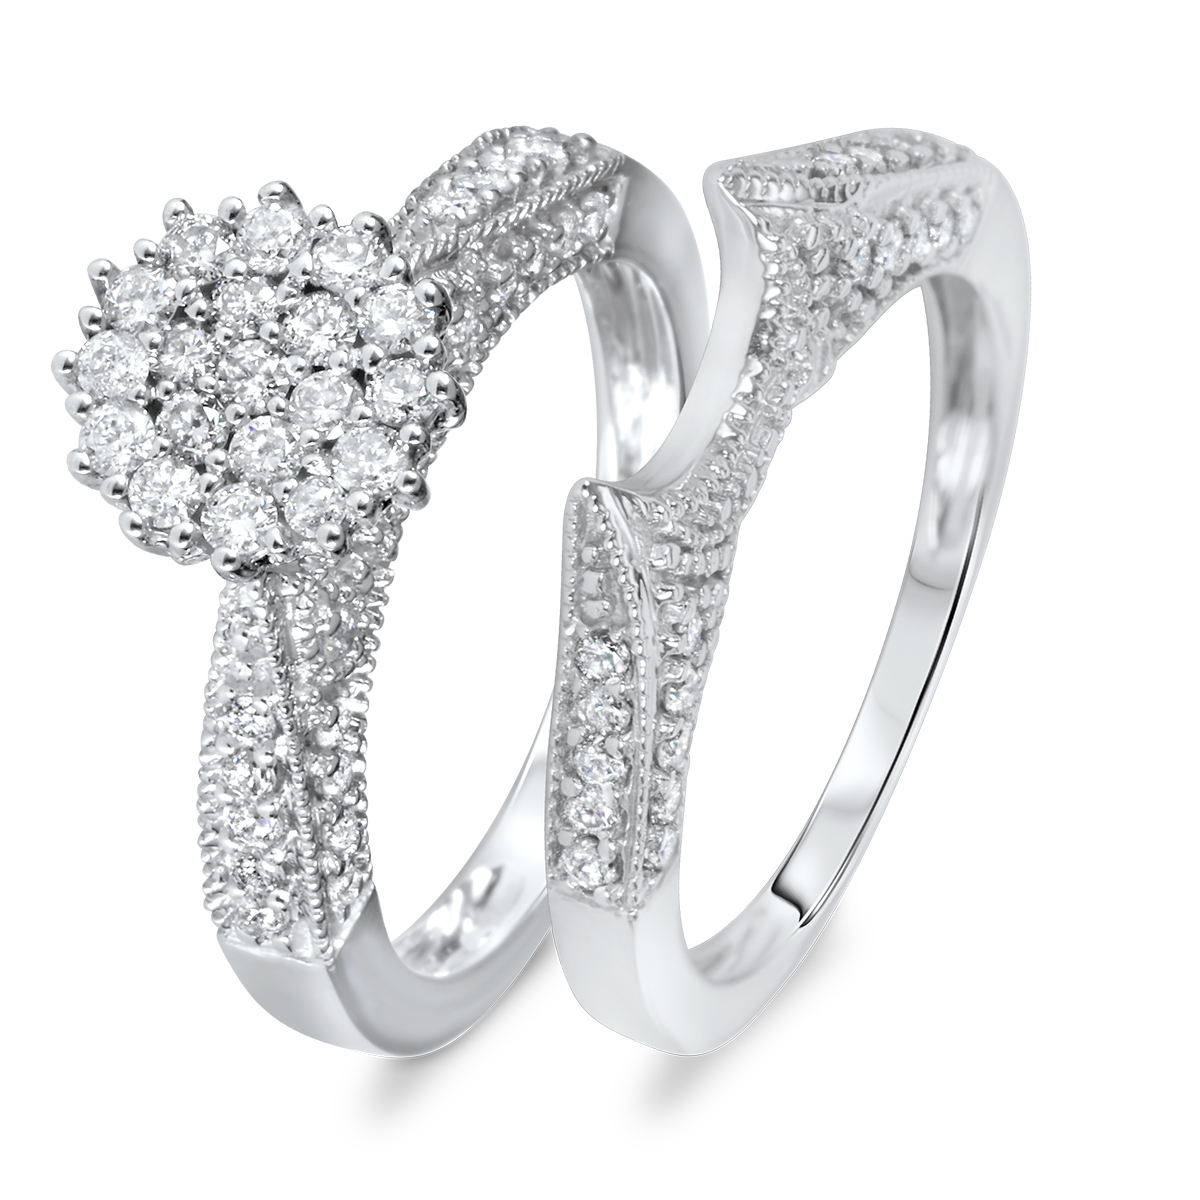 with for a side wedding women and anniversary diamong rings stones diamond engagement